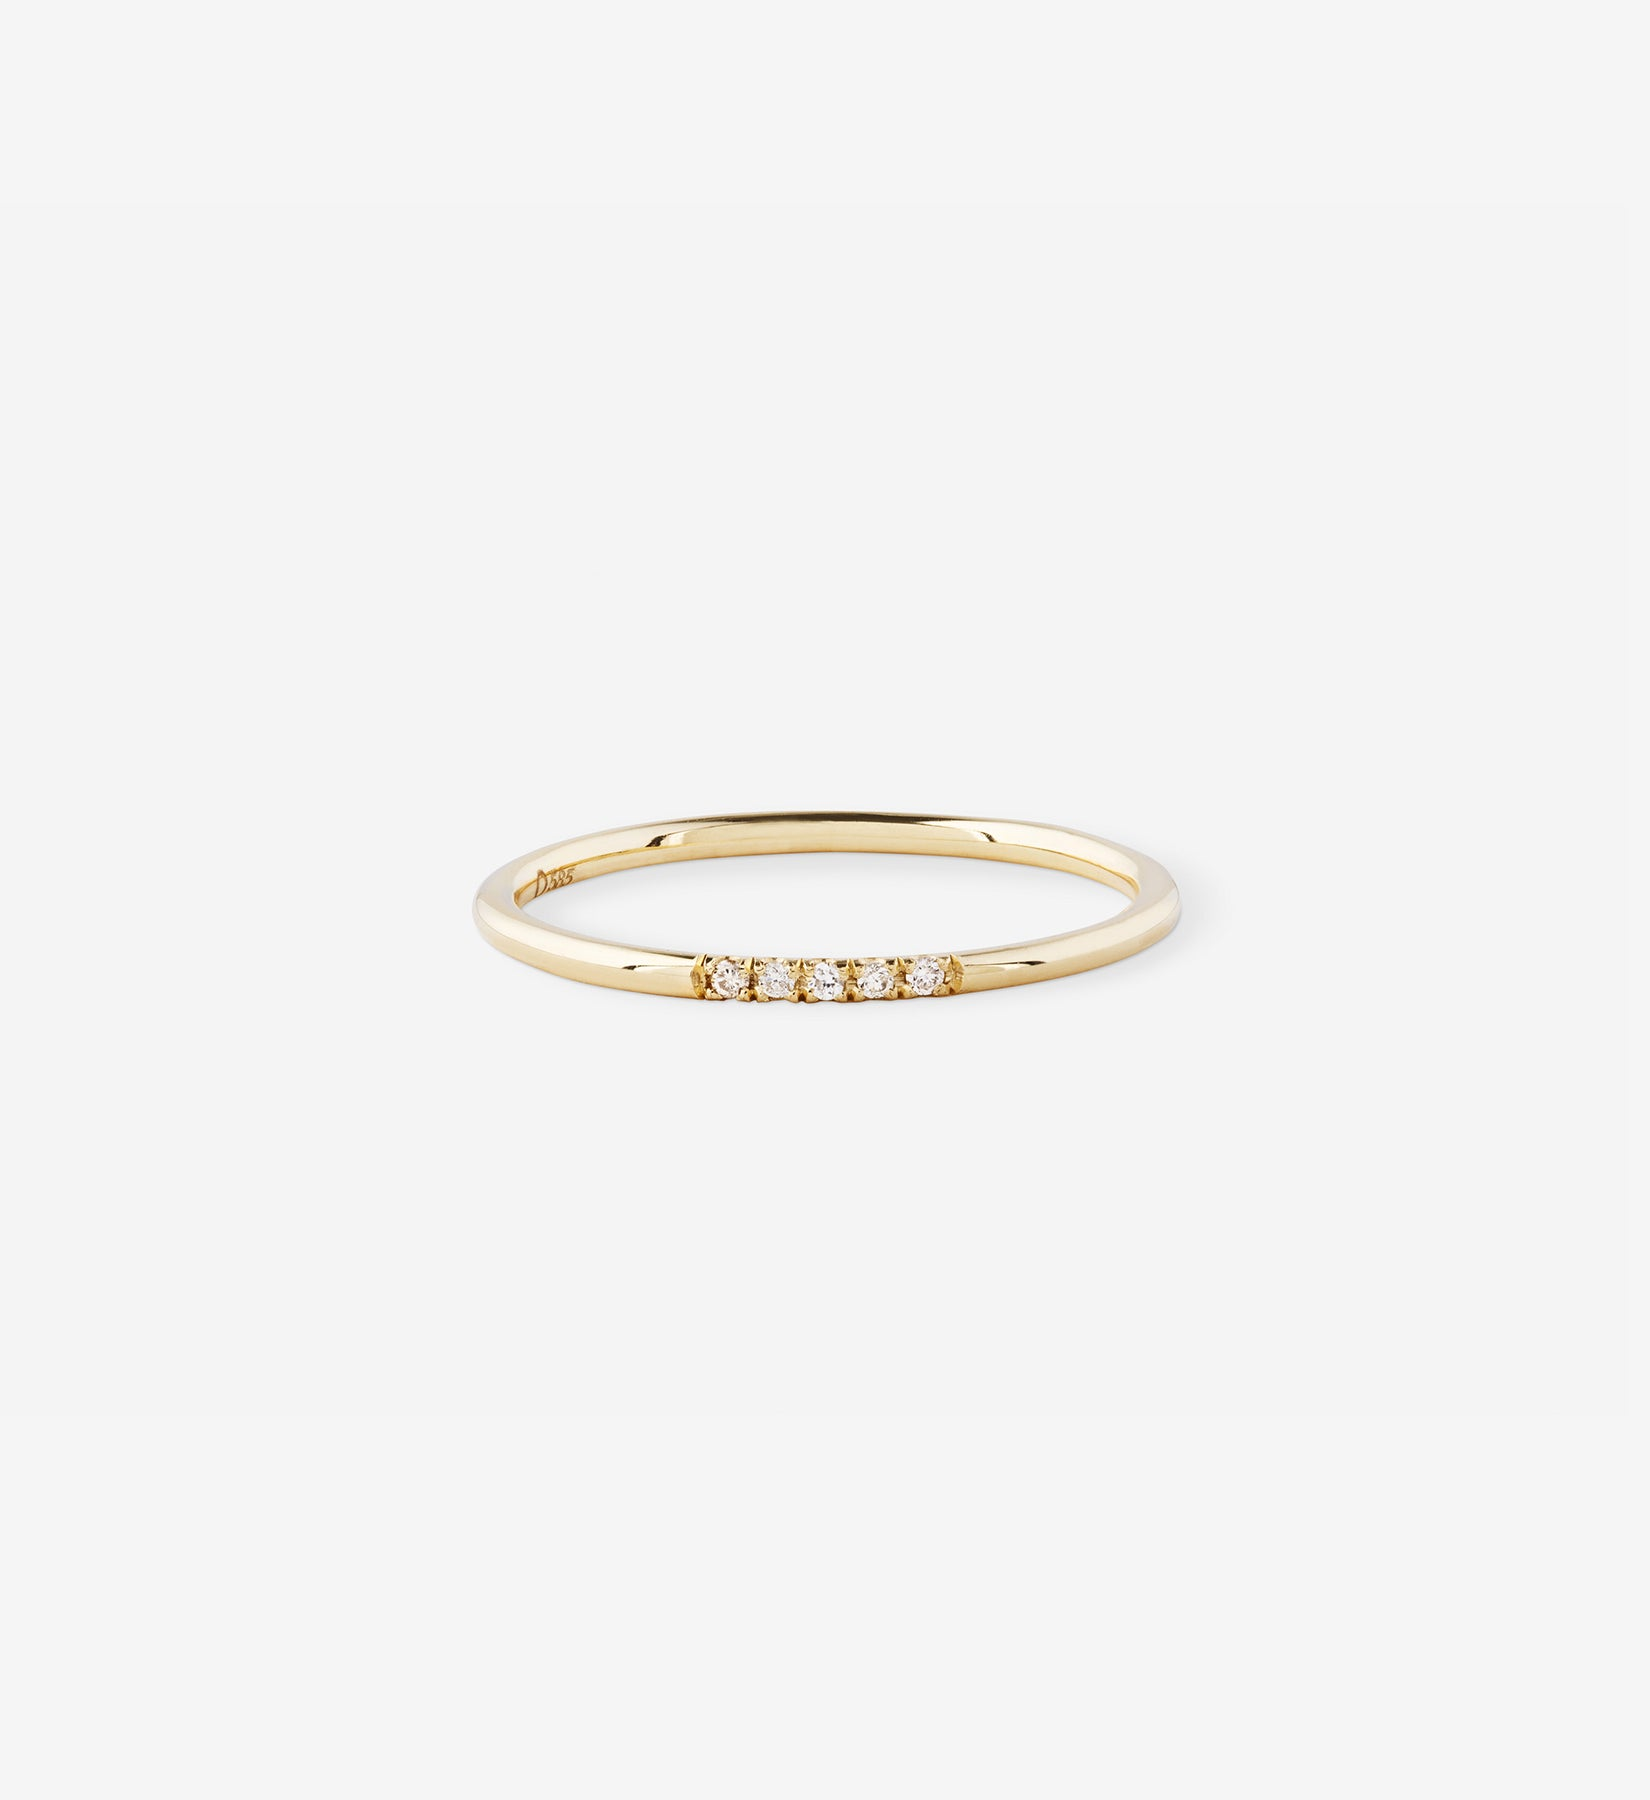 OUVERTURE, Fine jewelry, 14K gold, diamonds, golden ring, diamond ring, golden earring, diamond earring. Handcrafted jewelry. Designed in Berlin. Honestly priced. Demifine. Earparty. Stacking rings. Diamond Huggie, Huggie earring, golden huggie earring diamond line ring 0.025